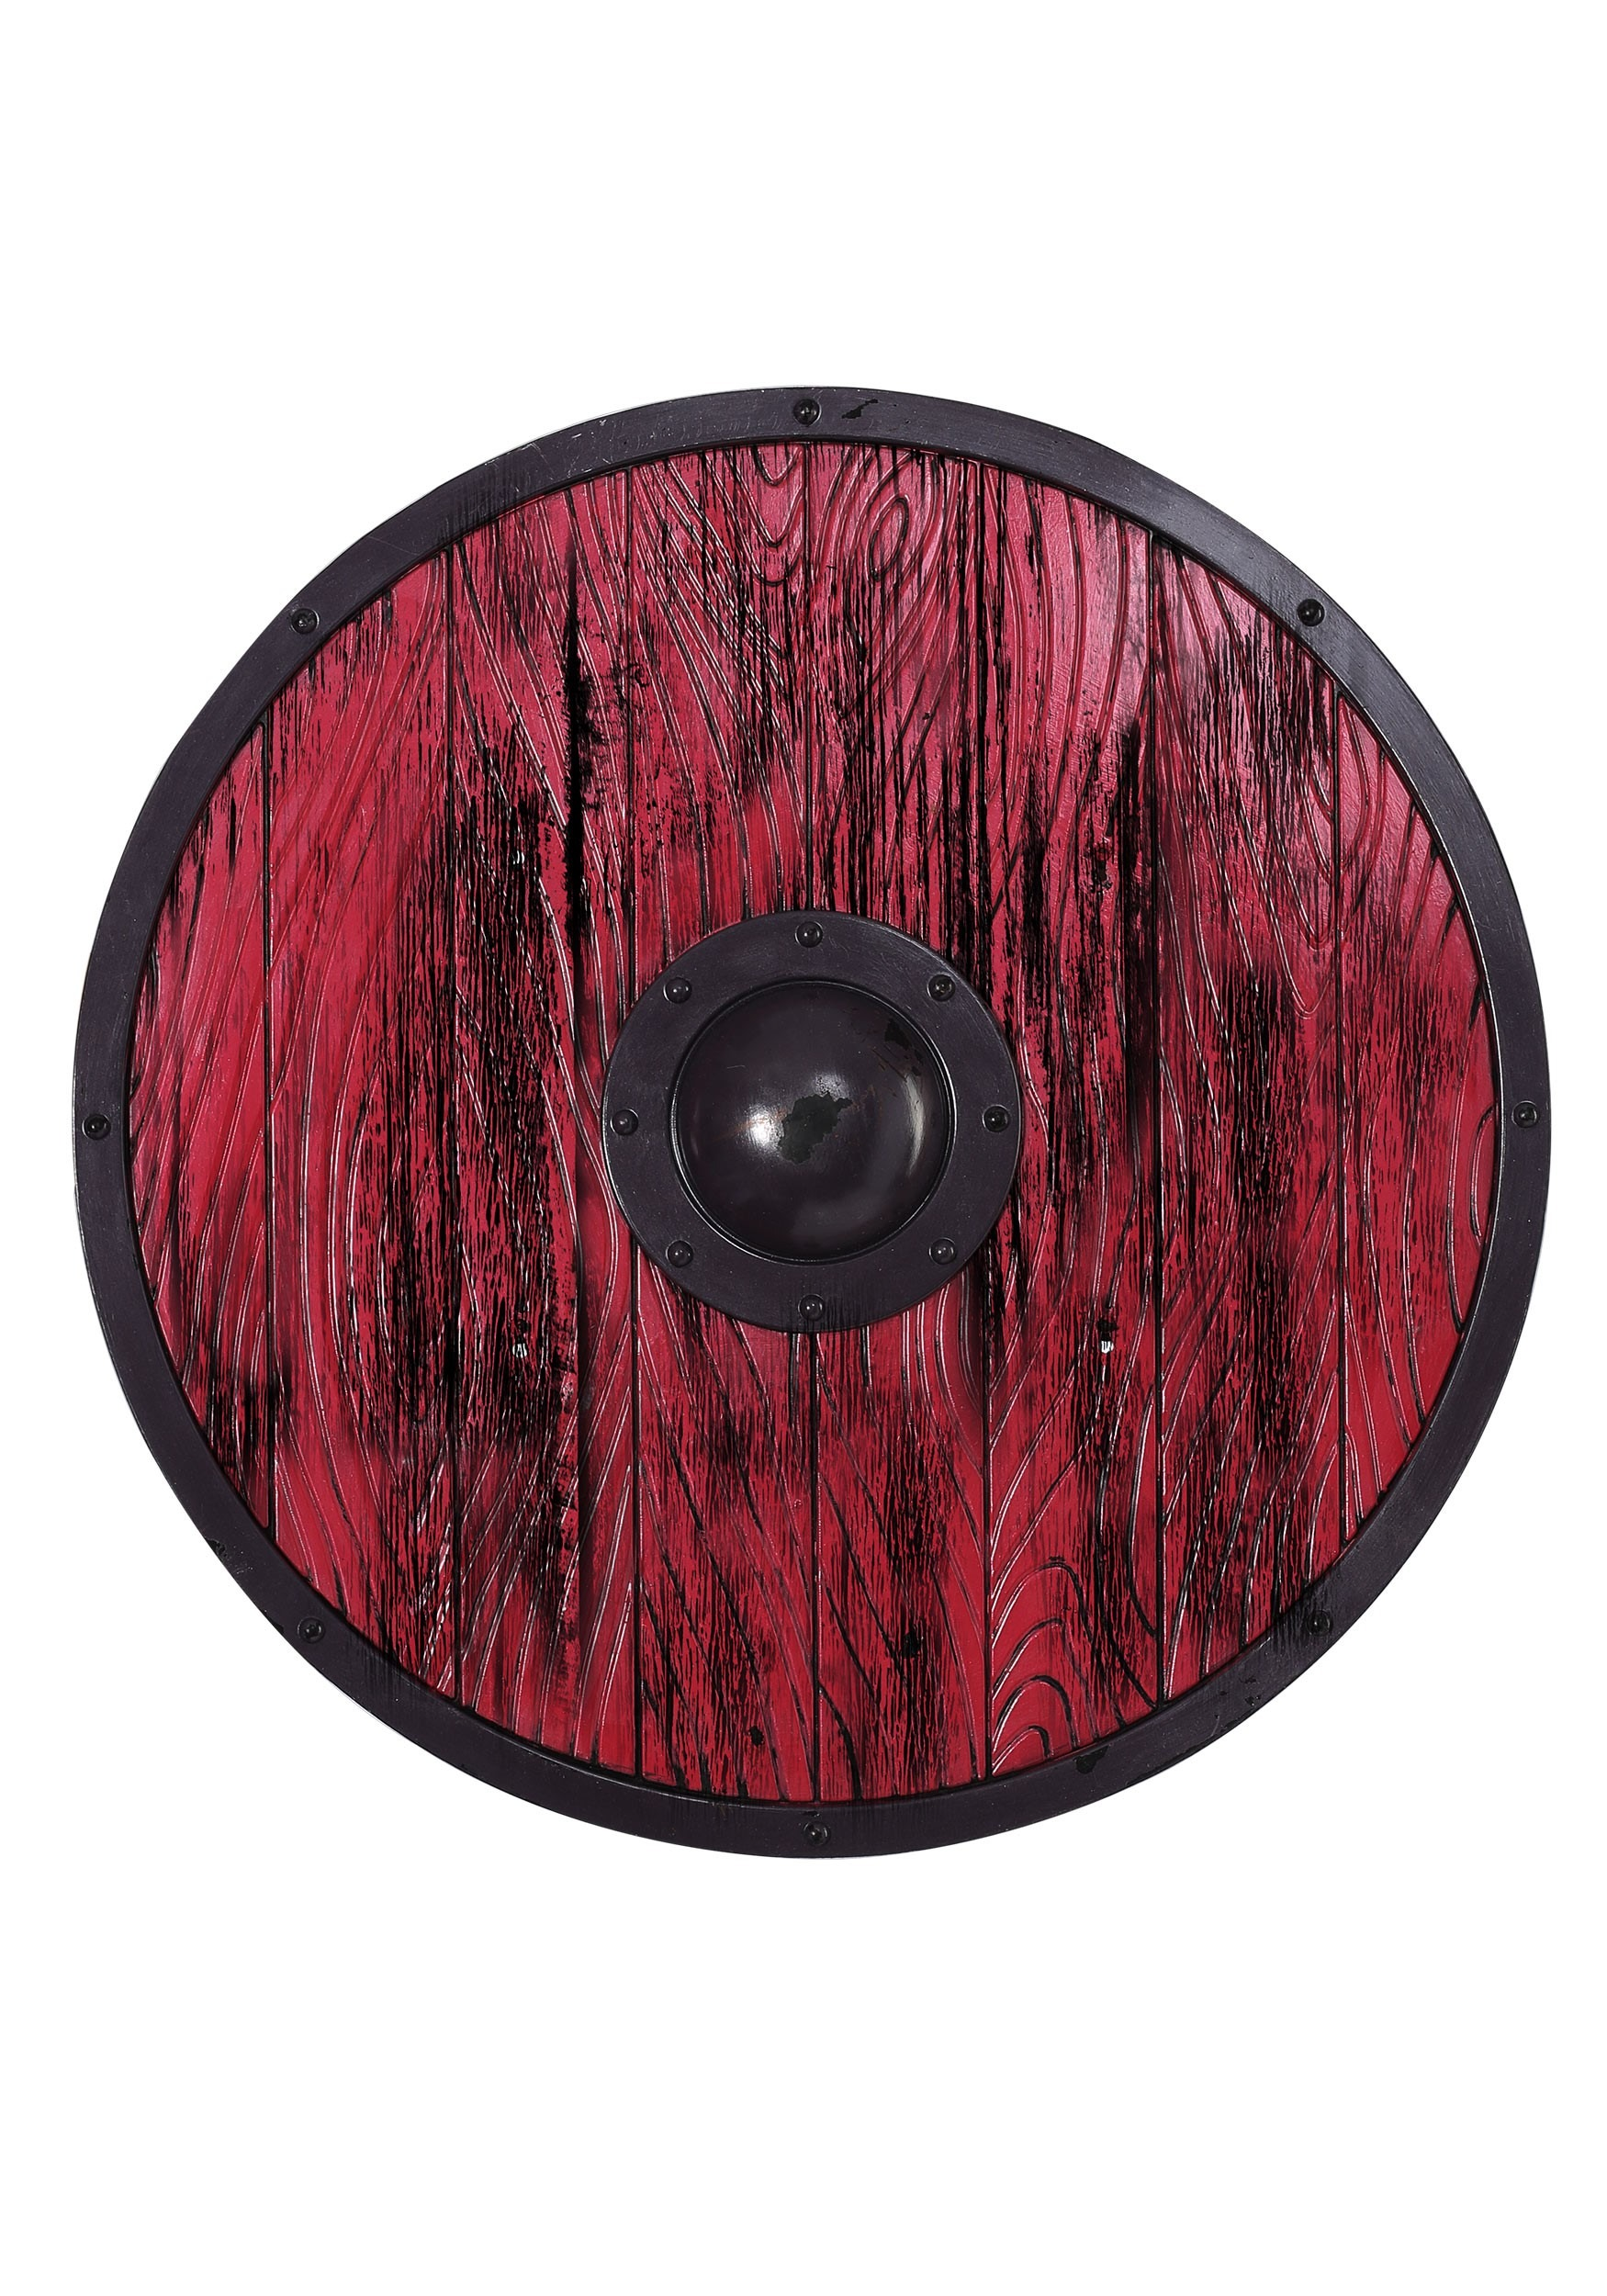 Ragnar Lothbrok Red Shield from Vikings